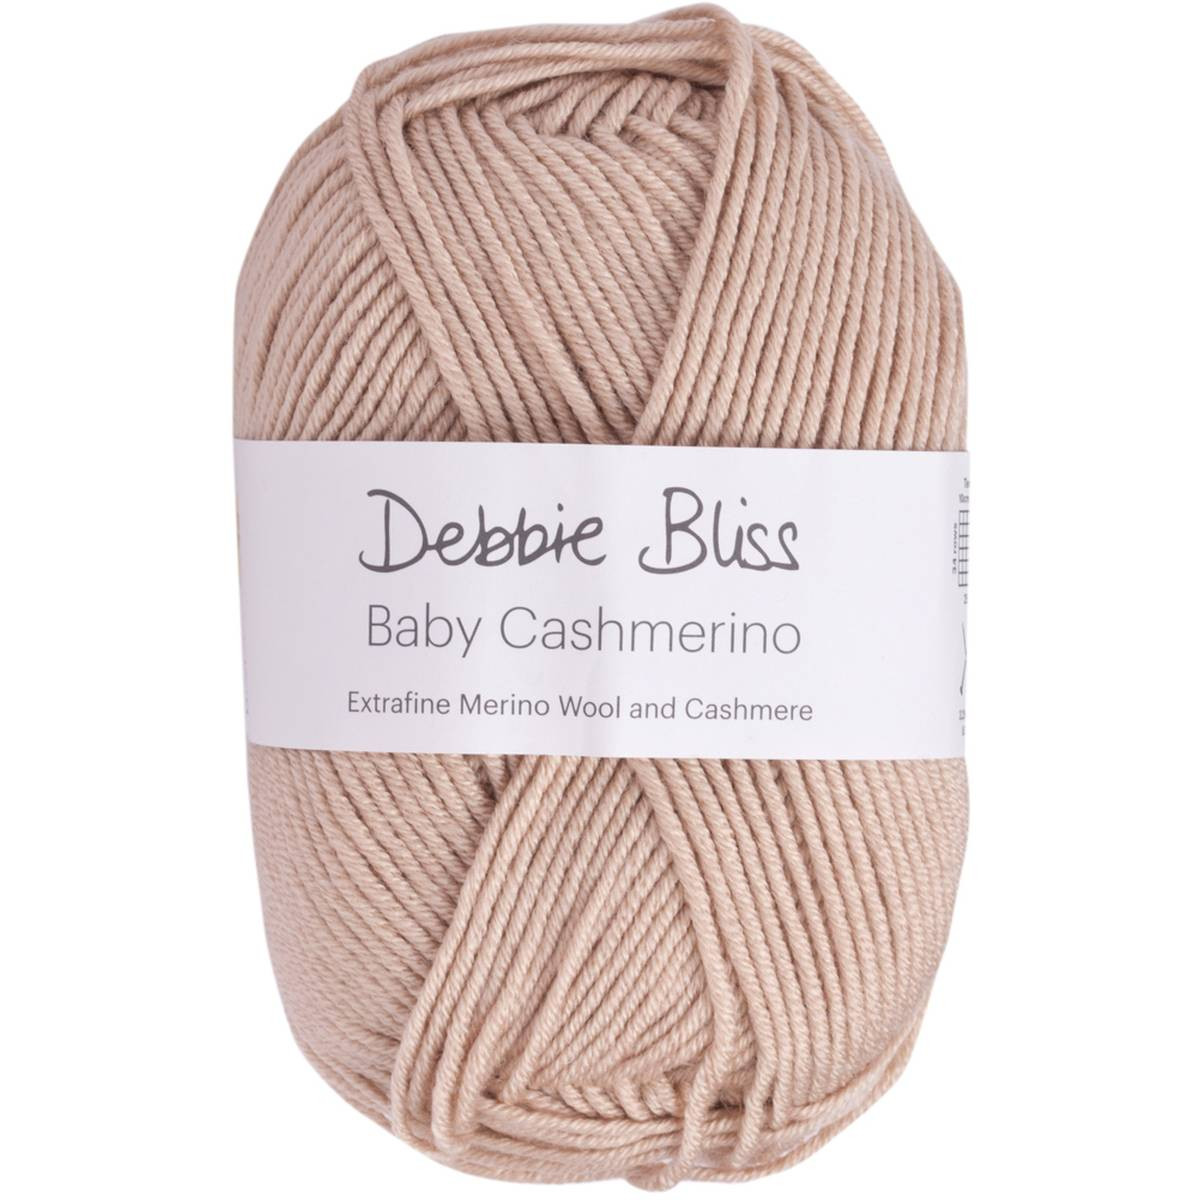 Debbie Bliss Yarn Lovely Debbie Bliss Camel Baby Cashmerino Yarn 50 G Of Contemporary 48 Pictures Debbie Bliss Yarn